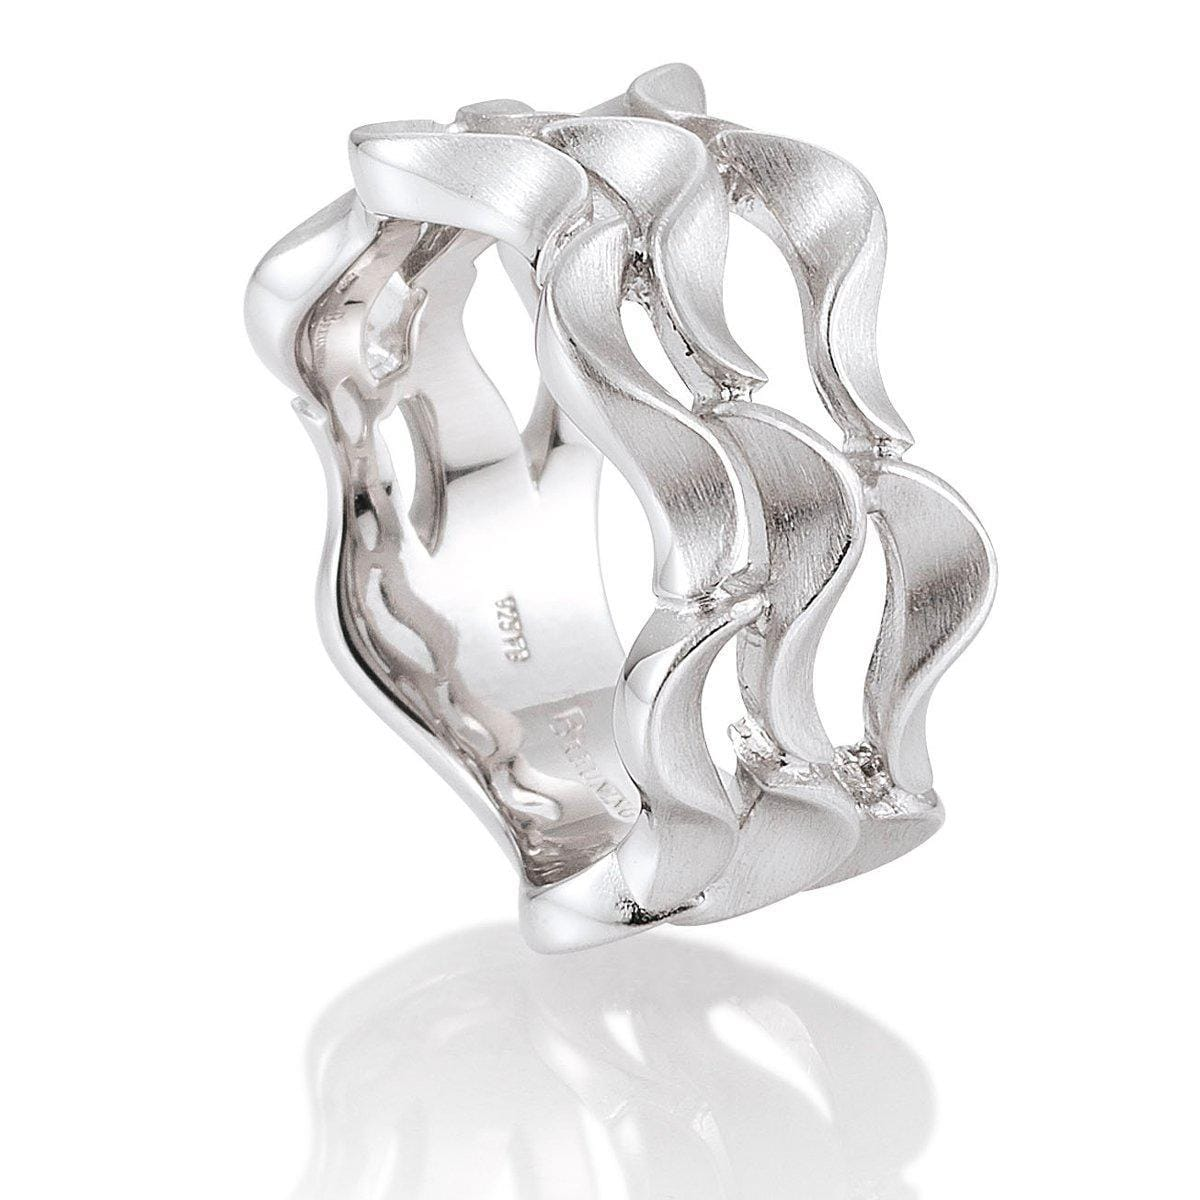 Rhodium Plated Sterling Silver Ring - 44/01480-Breuning-Renee Taylor Gallery